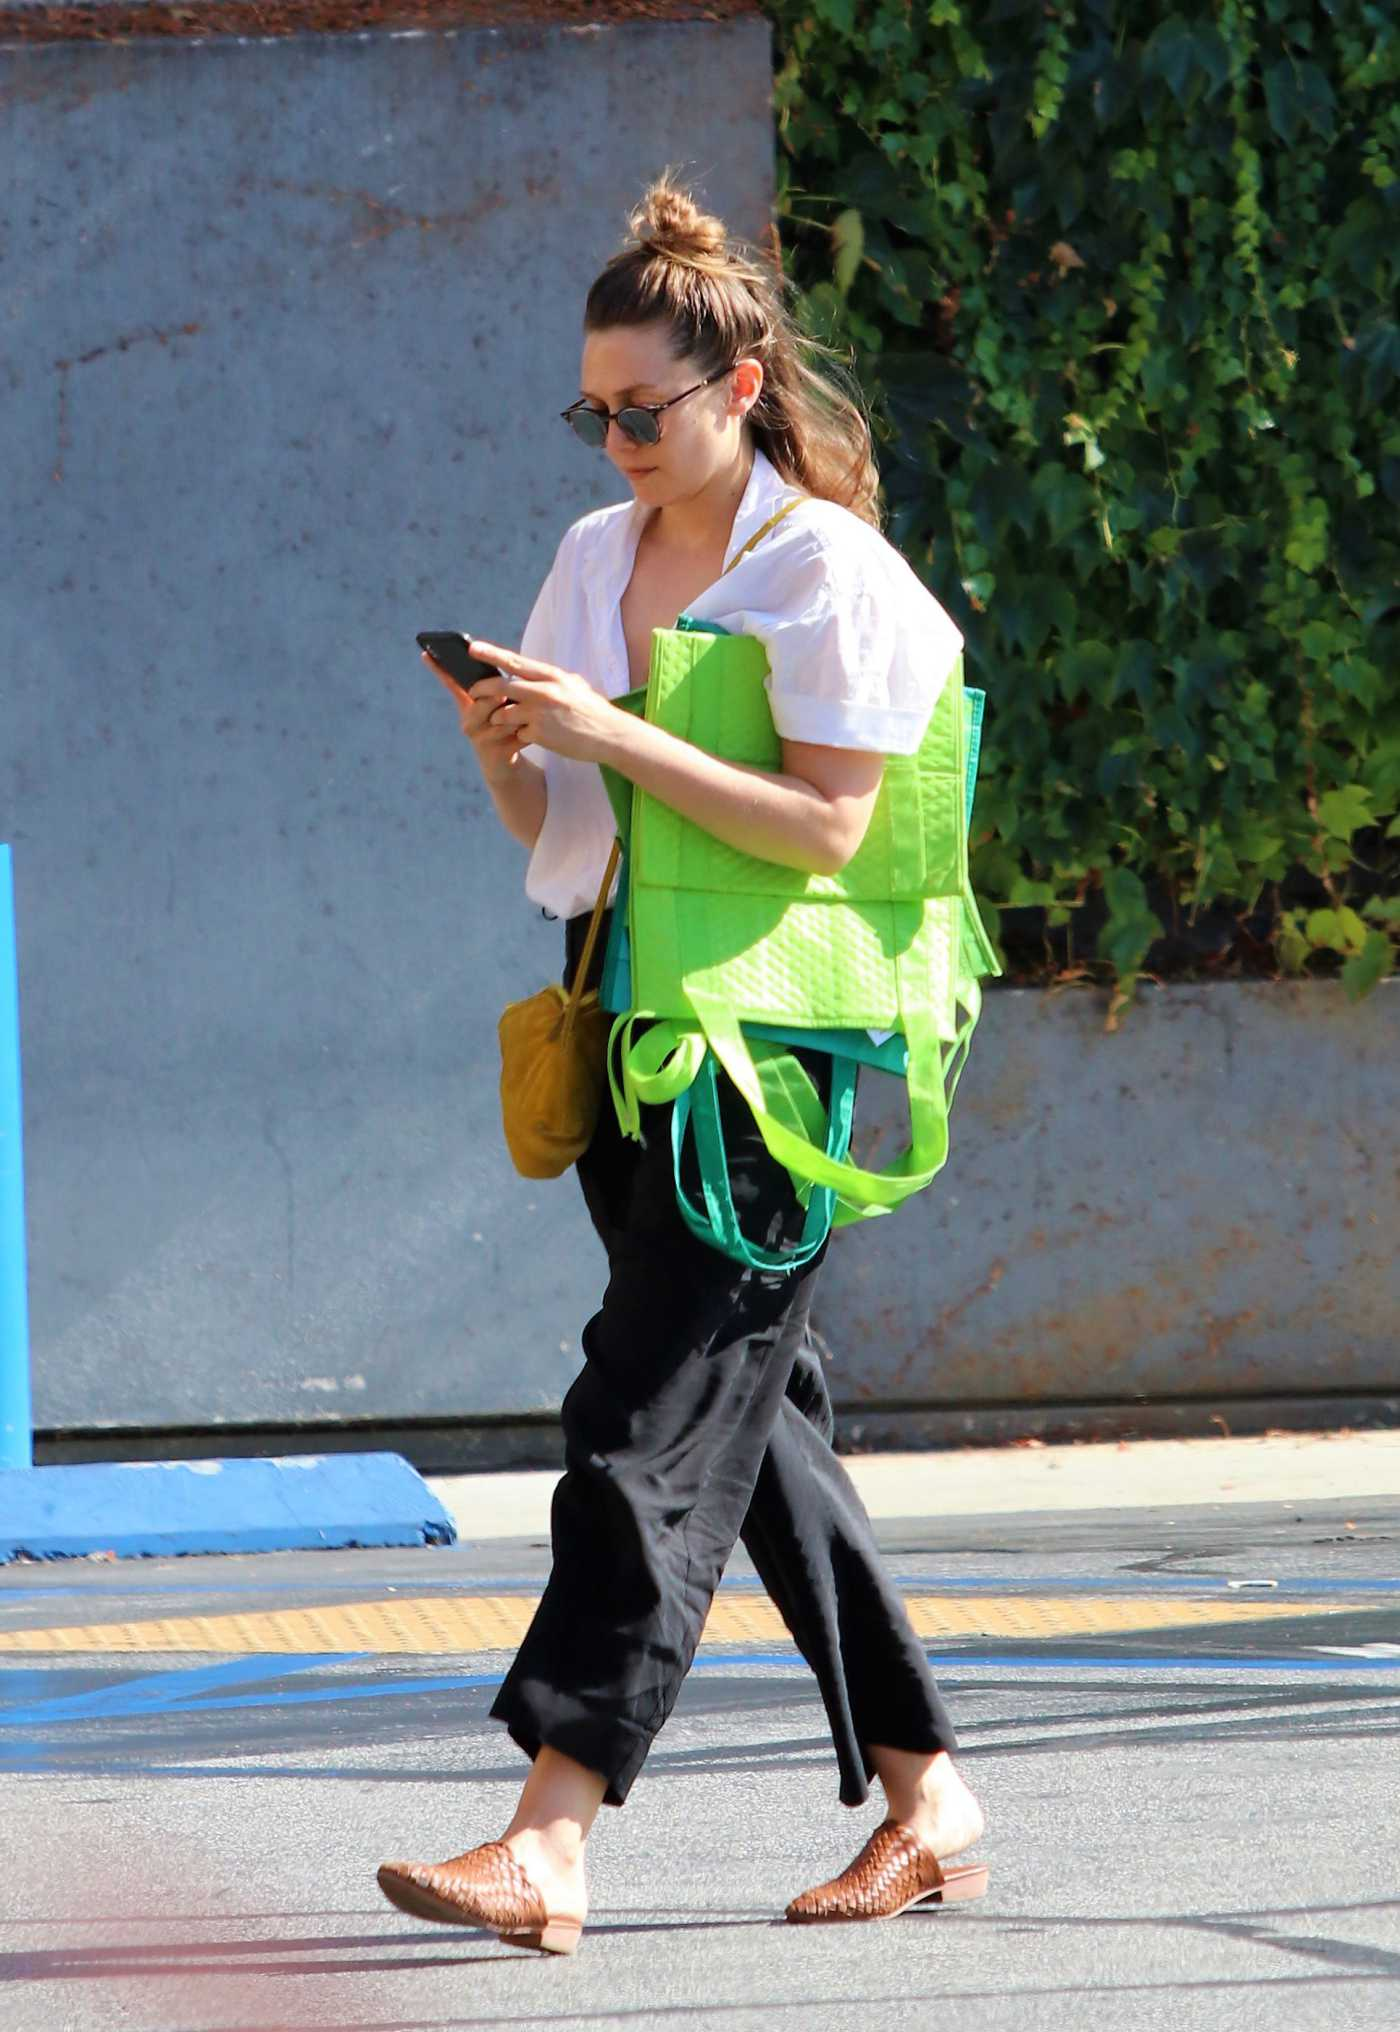 Elizabeth Olsen in a White Blouse Goes Grocery Shopping at Gleason's Market in LA 07/12/2019